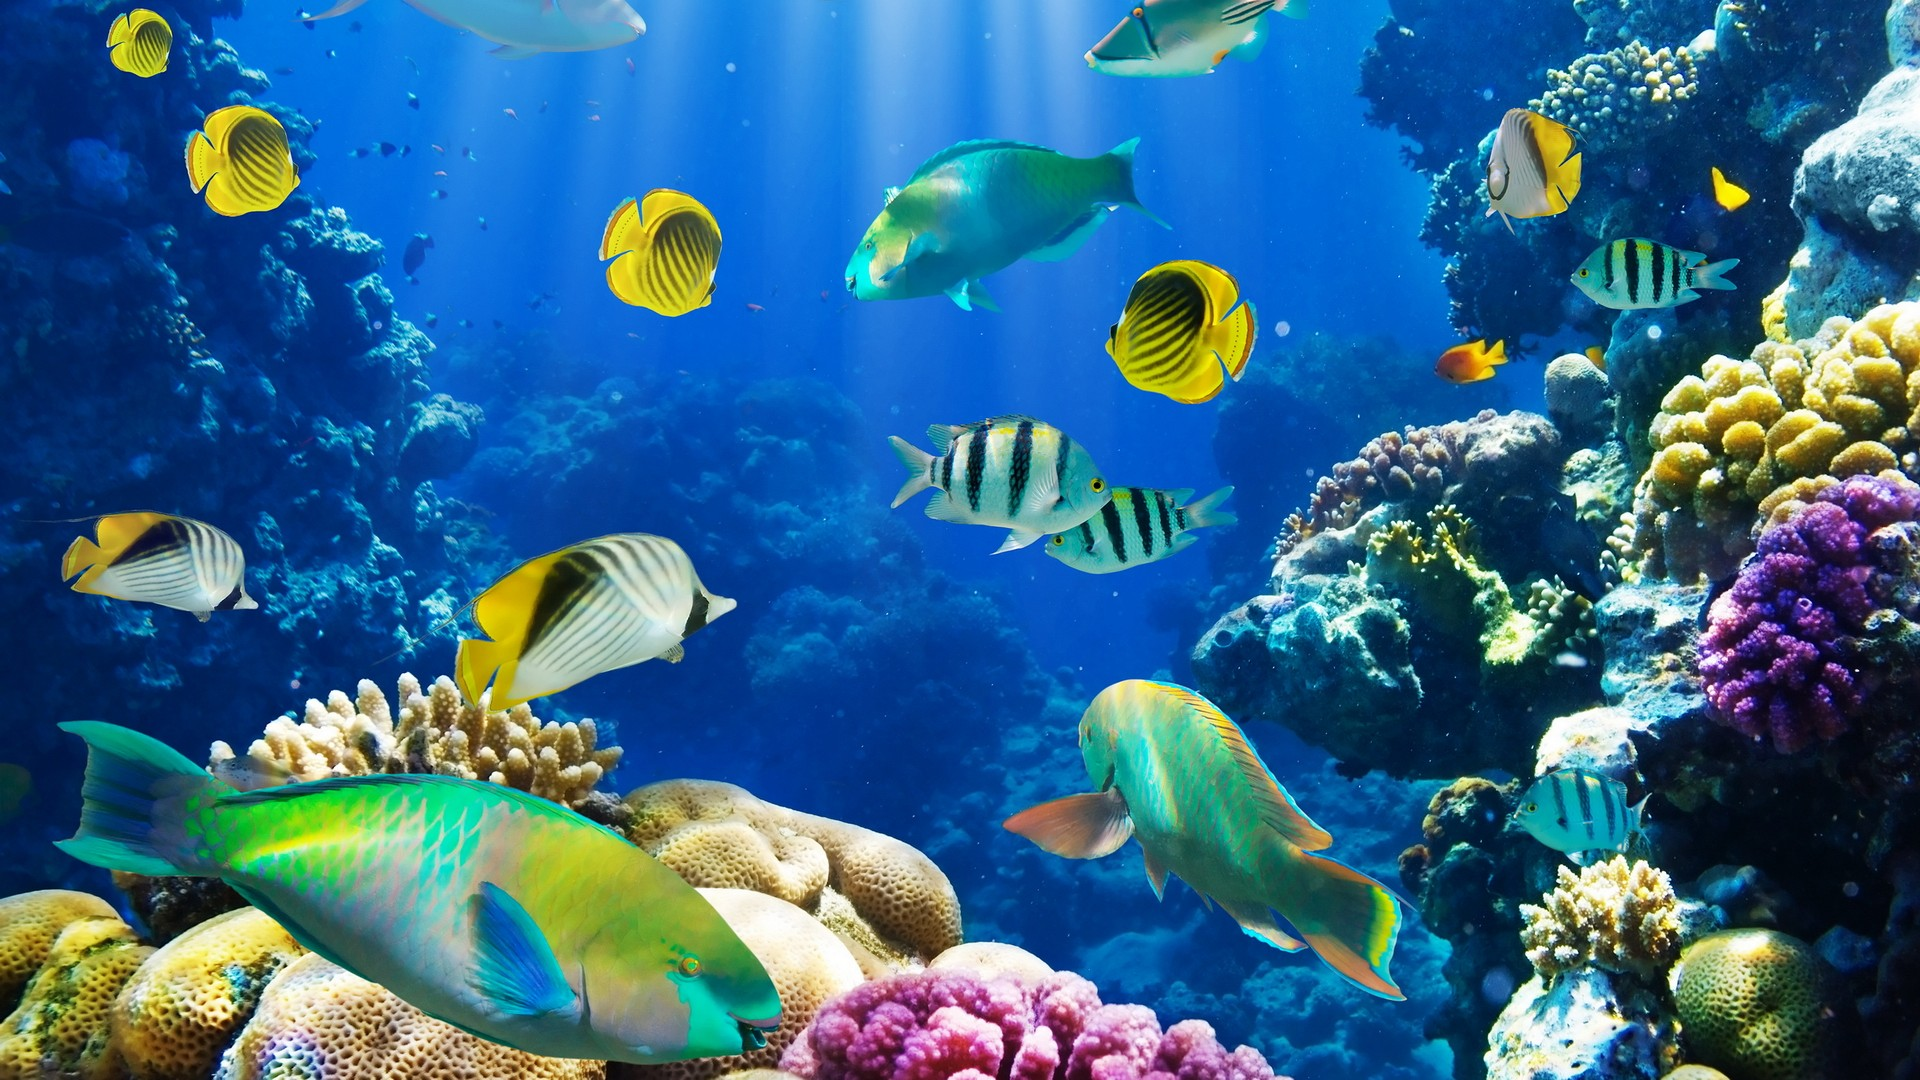 Hd Tropical Island Beach Paradise Wallpapers And Backgrounds: Fish Backgrounds